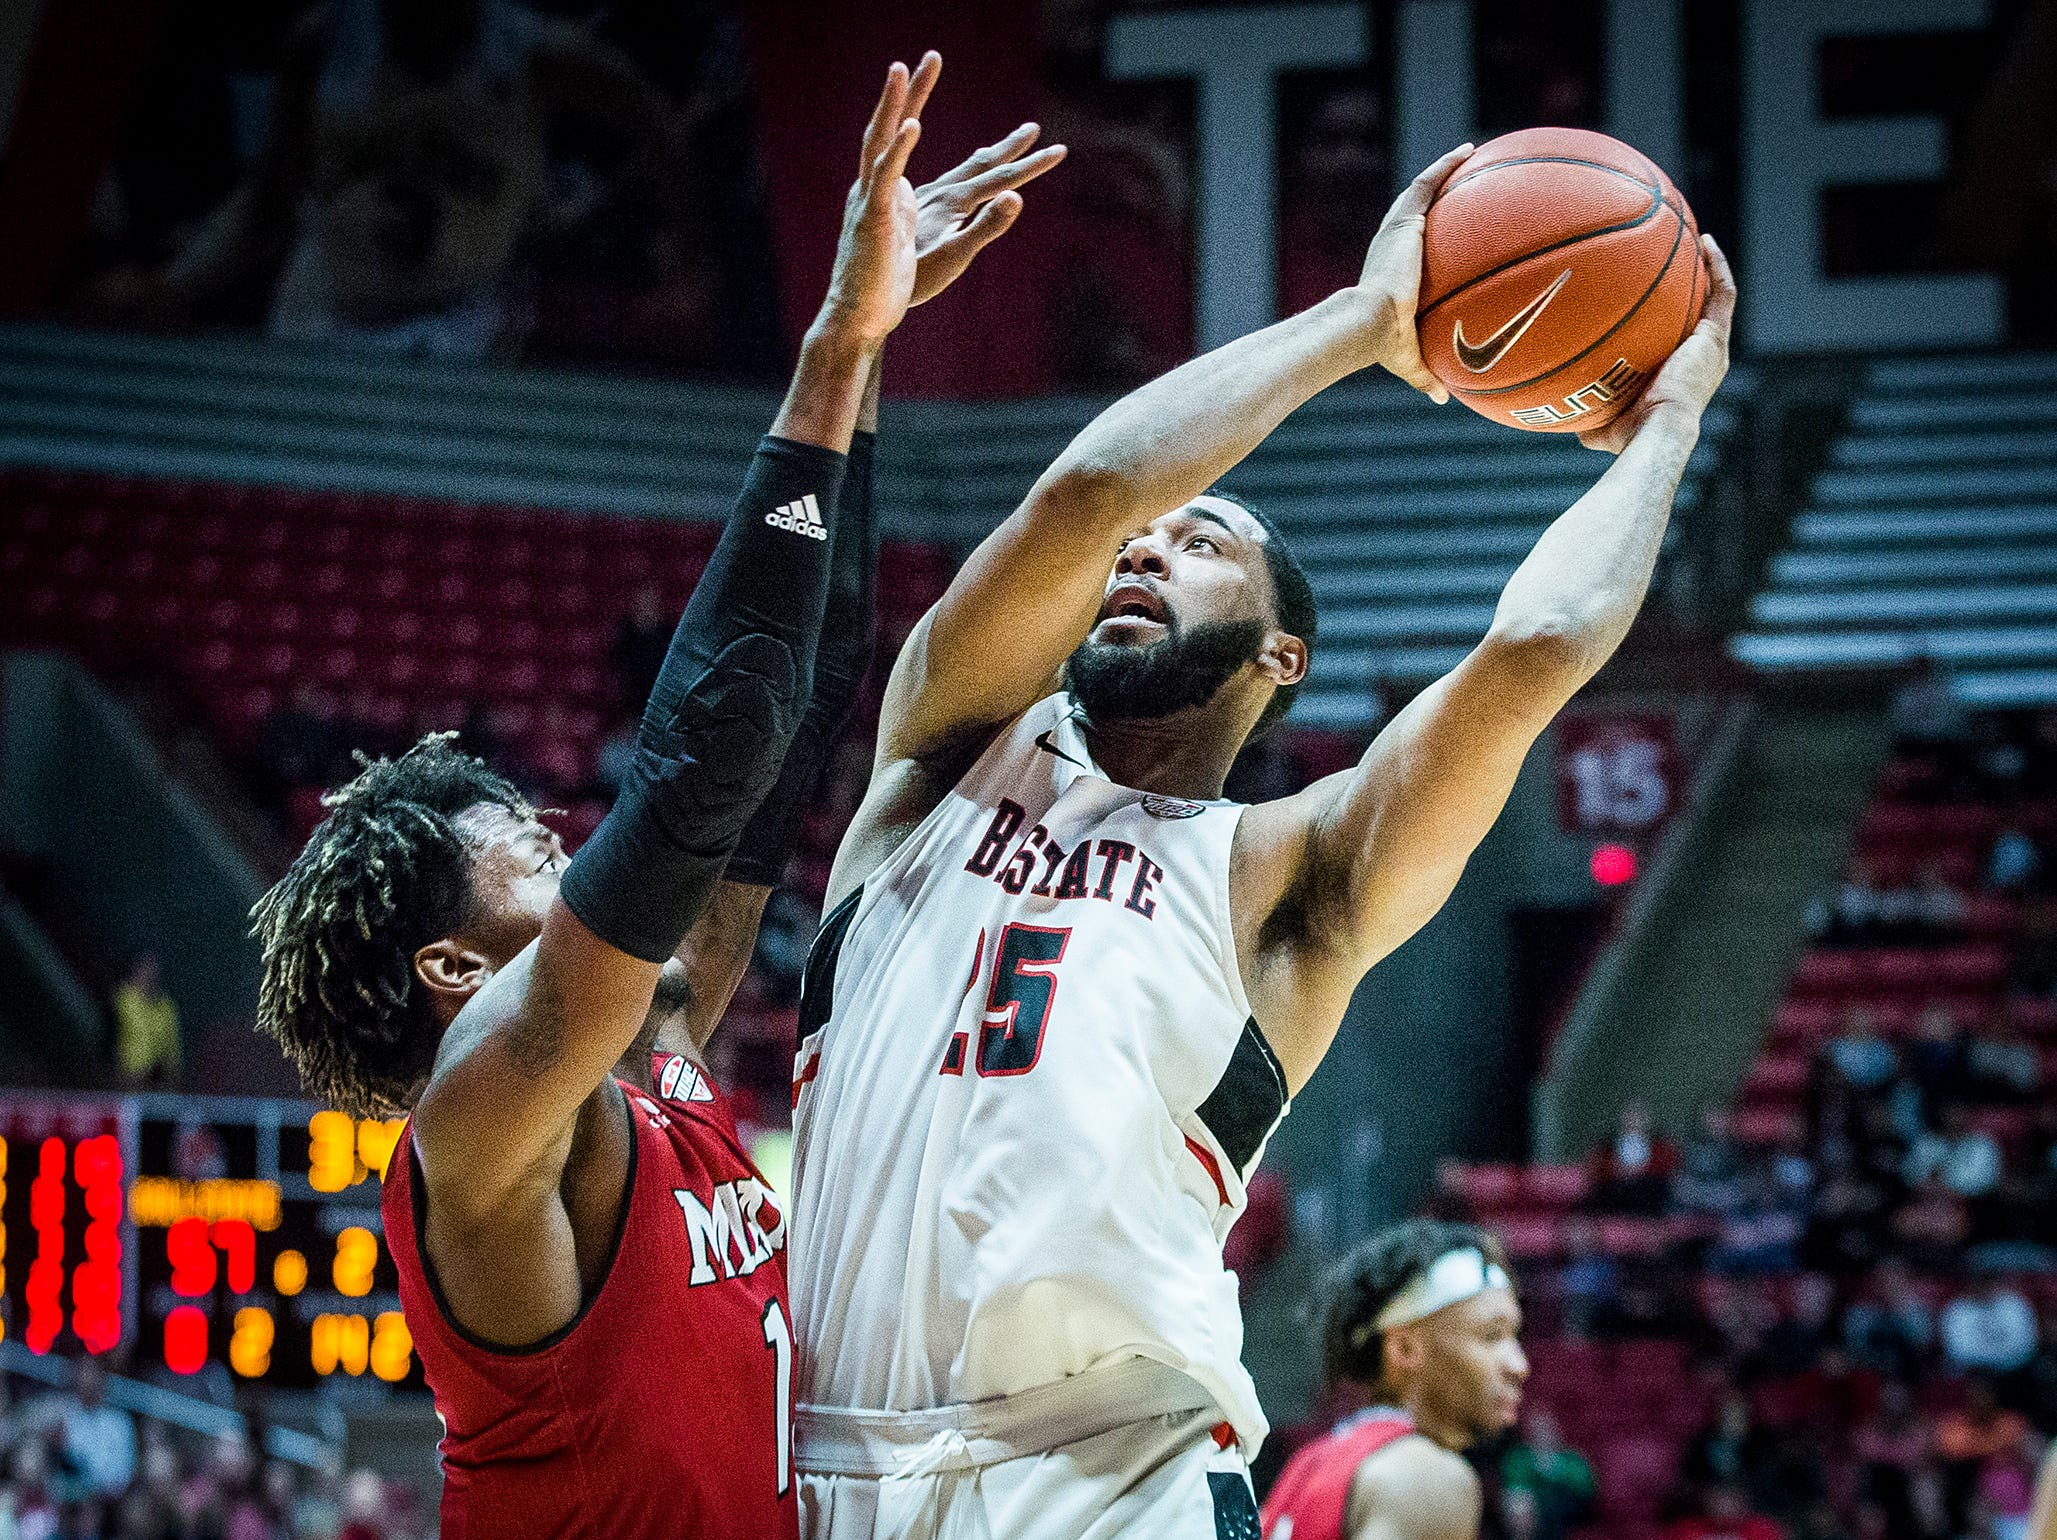 Ball State's Tahjai Teague shoots past Miami's defense during their game at Worthen Arena Tuesday, Jan. 22, 2018.